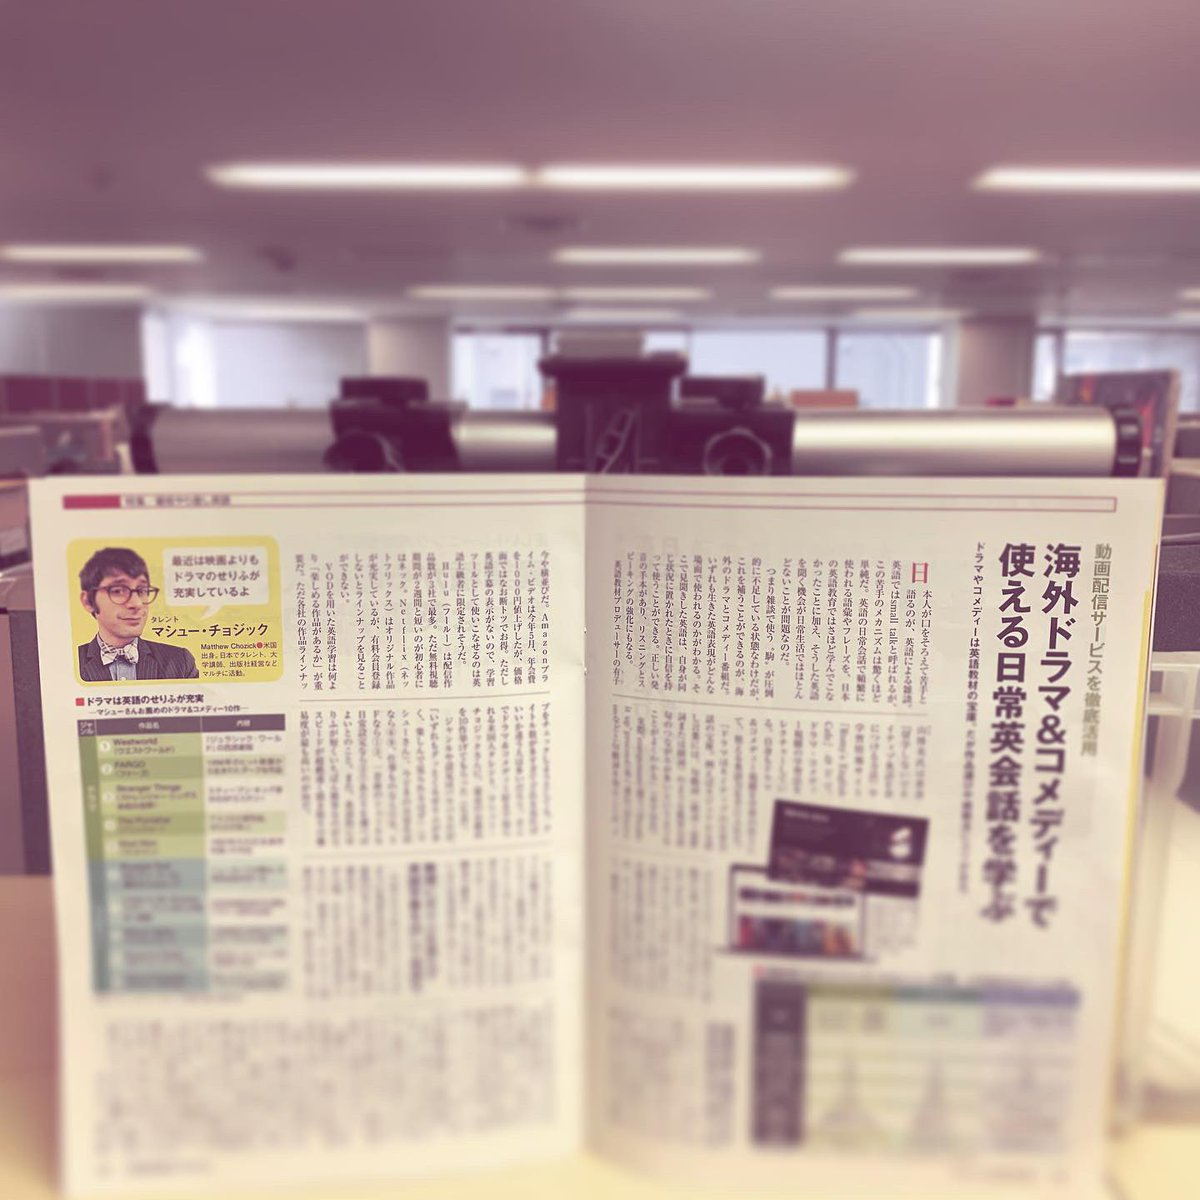 本日発売の「#週刊東洋経済」で、おススメの海外ドラマを紹介しています。 ぜひ〜🤗 Spoke in the new issue of Weekly Toyo Keizai about my favorite steaming TV dramas and why having too much money can be bad for cinema. @w_toyokeizai